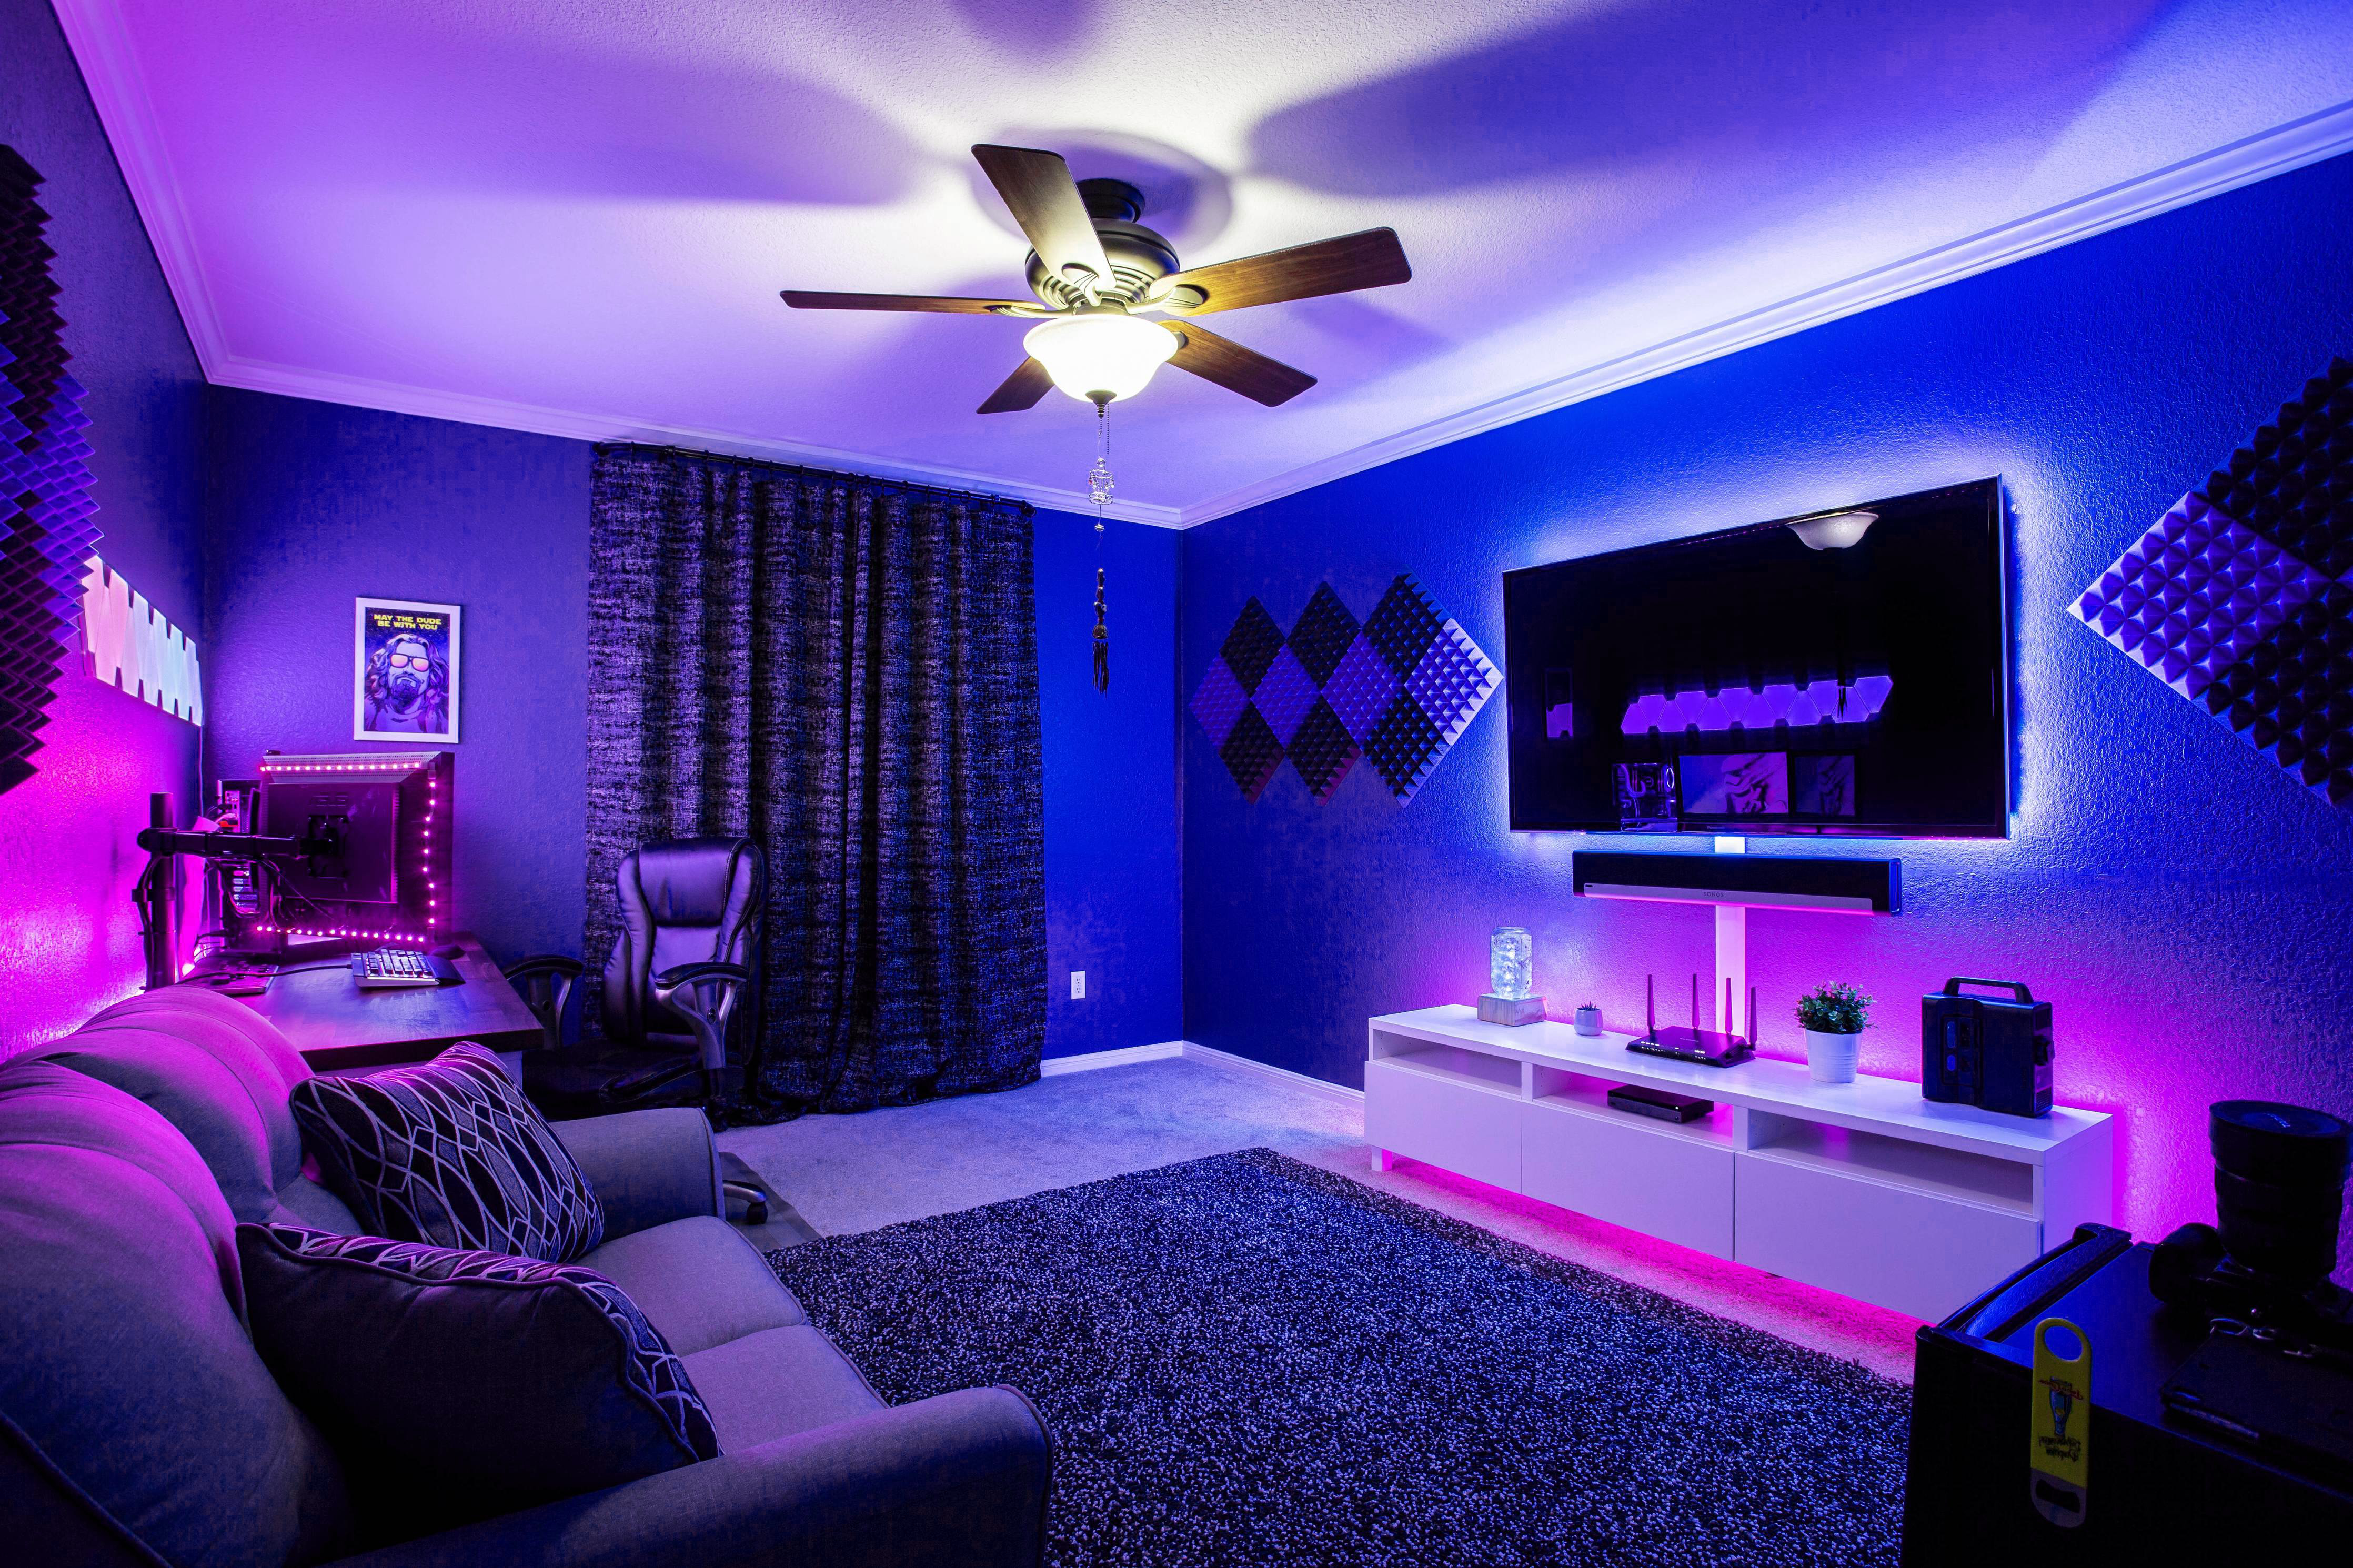 Light Up Your Room With Our Vertiiigo Led Light Strips Turn Your Room Into The Room Of Your Dreams Make Your Bedro Bedroom Setup Chill Room Gaming Room Setup